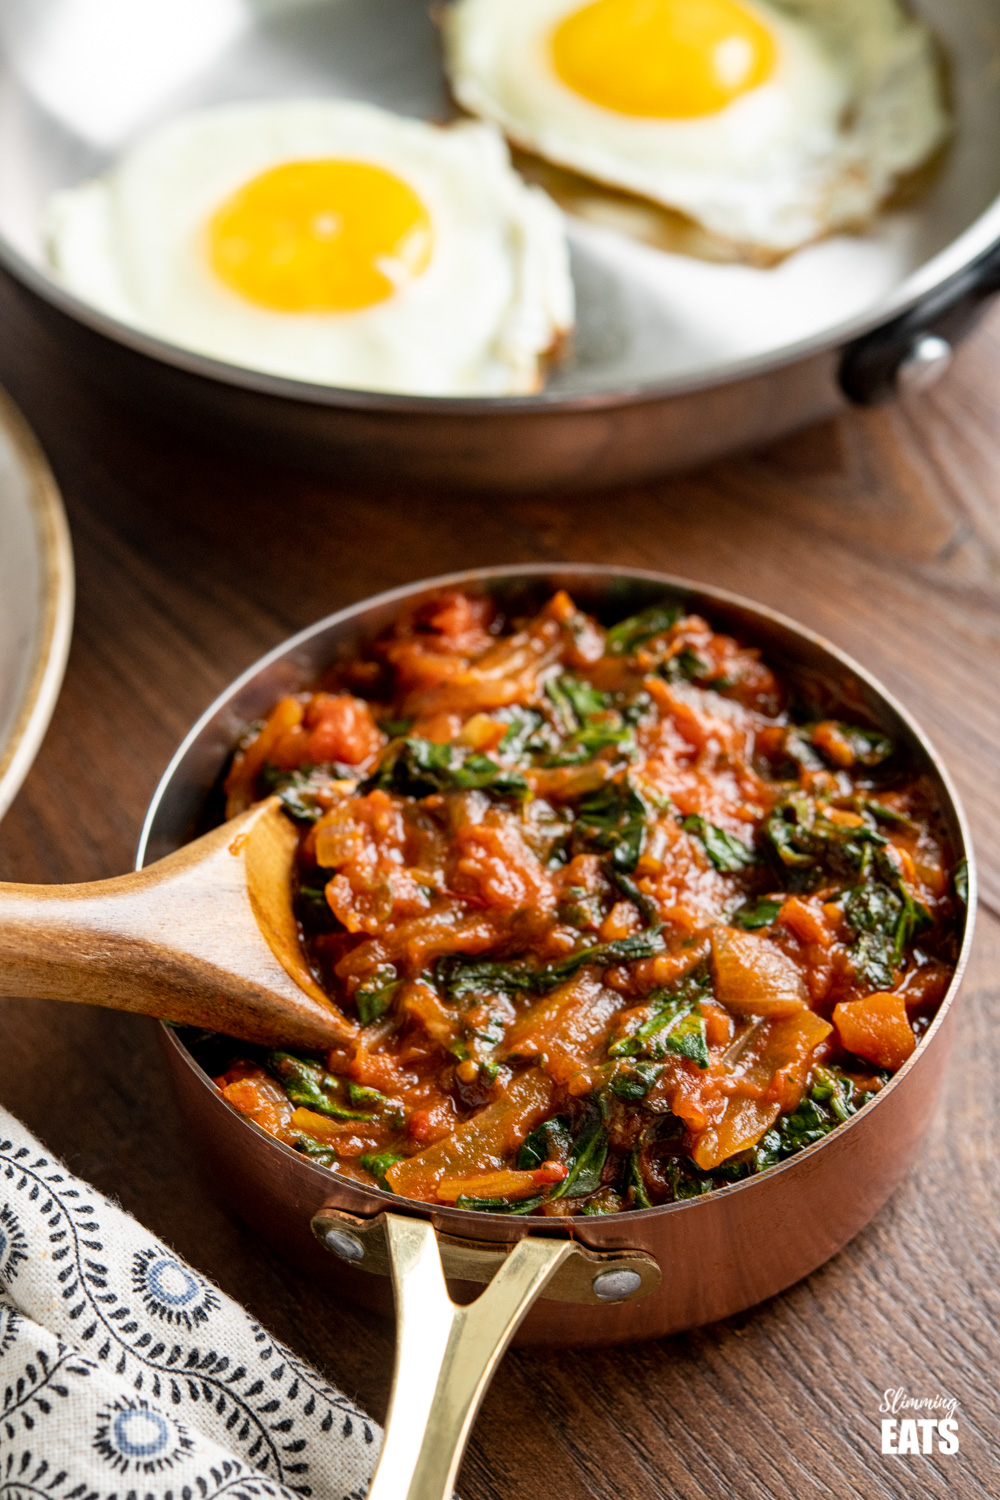 balsamic tomatoes with spinach in a copper mini saucepan with frying pan of eggs in background